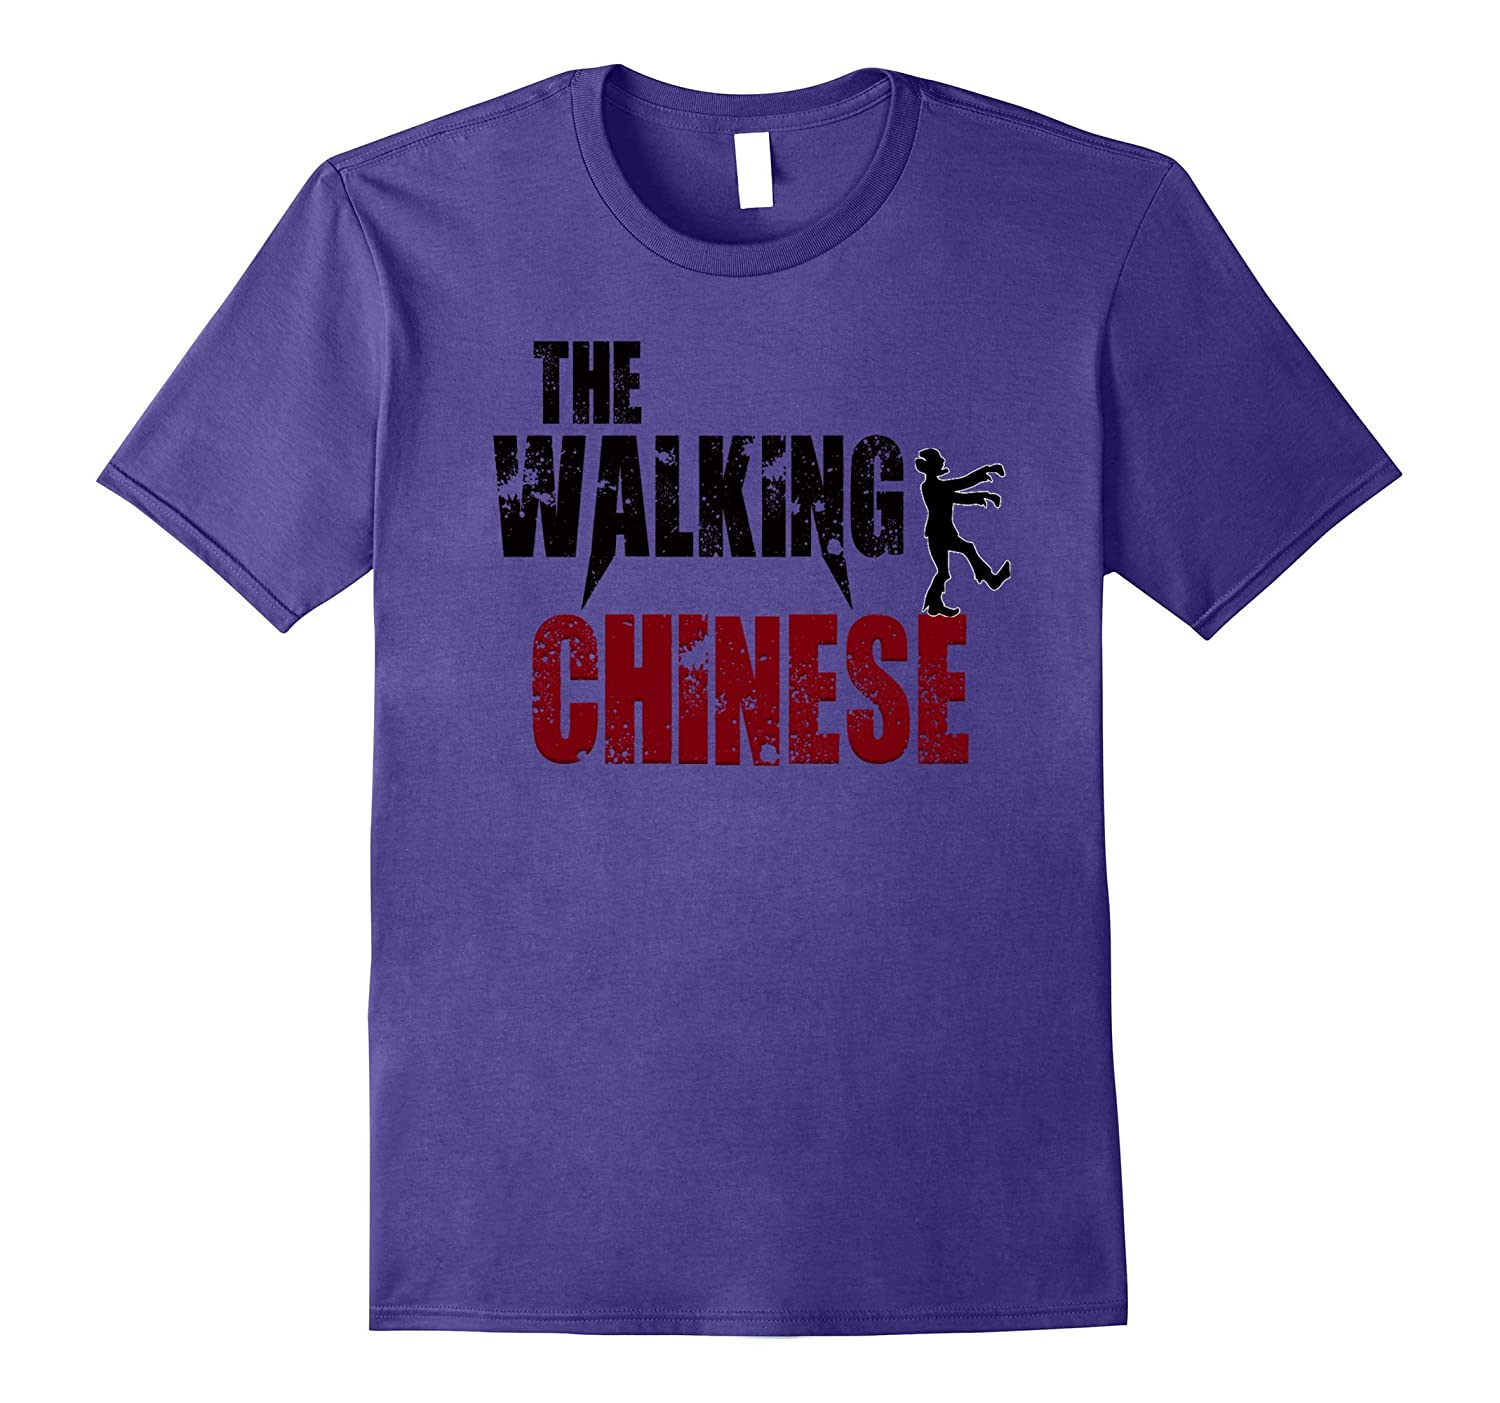 awesome Chinese Tshirt Asian funny geek tee shirt-TH